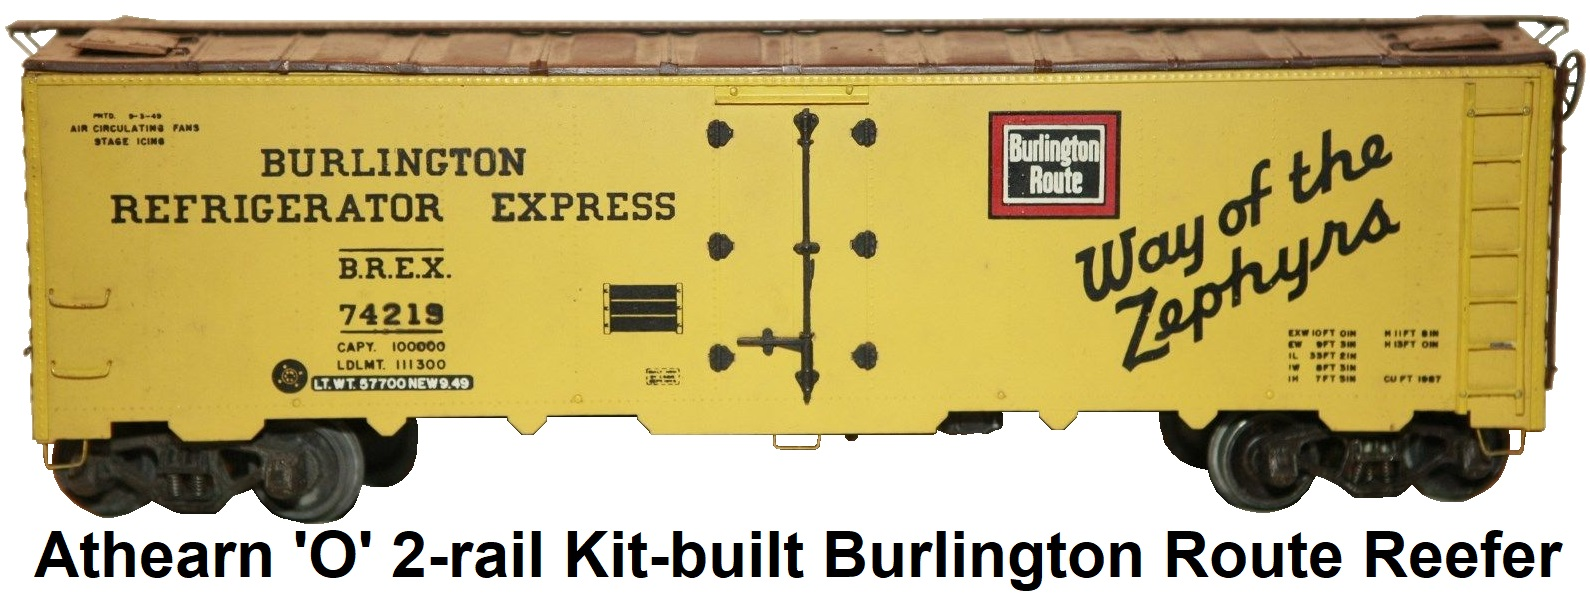 Athearn 'O' scale Kit-built 2-rail Burlington Route Way of the Zephyrs Reefer #74215